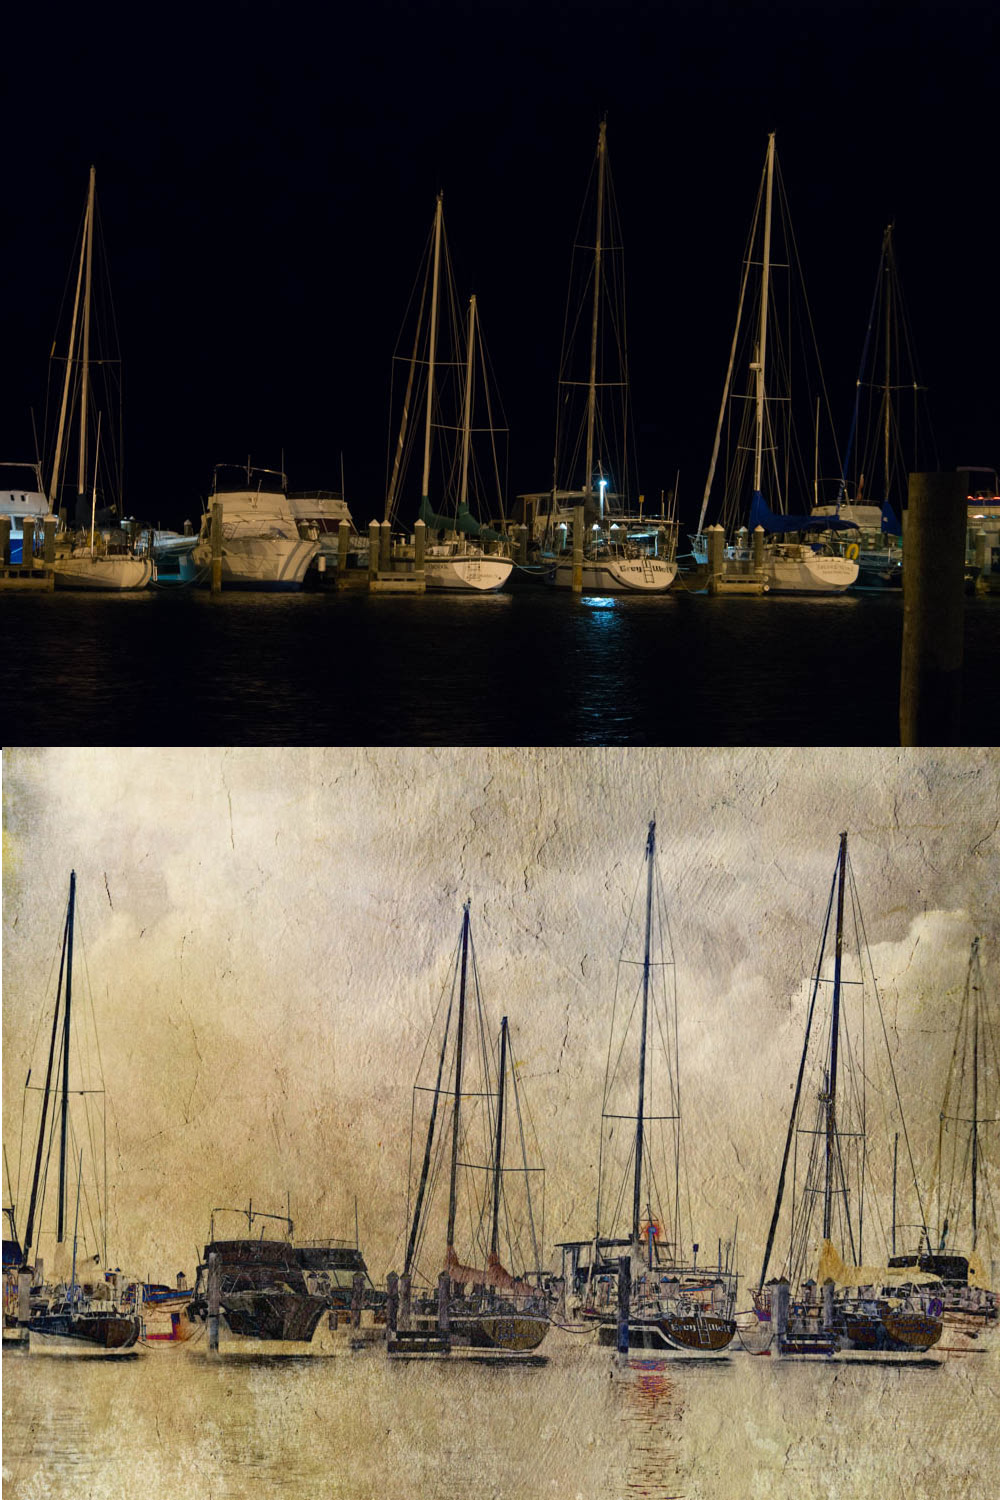 fulton-harbor-at-night-before-and-after